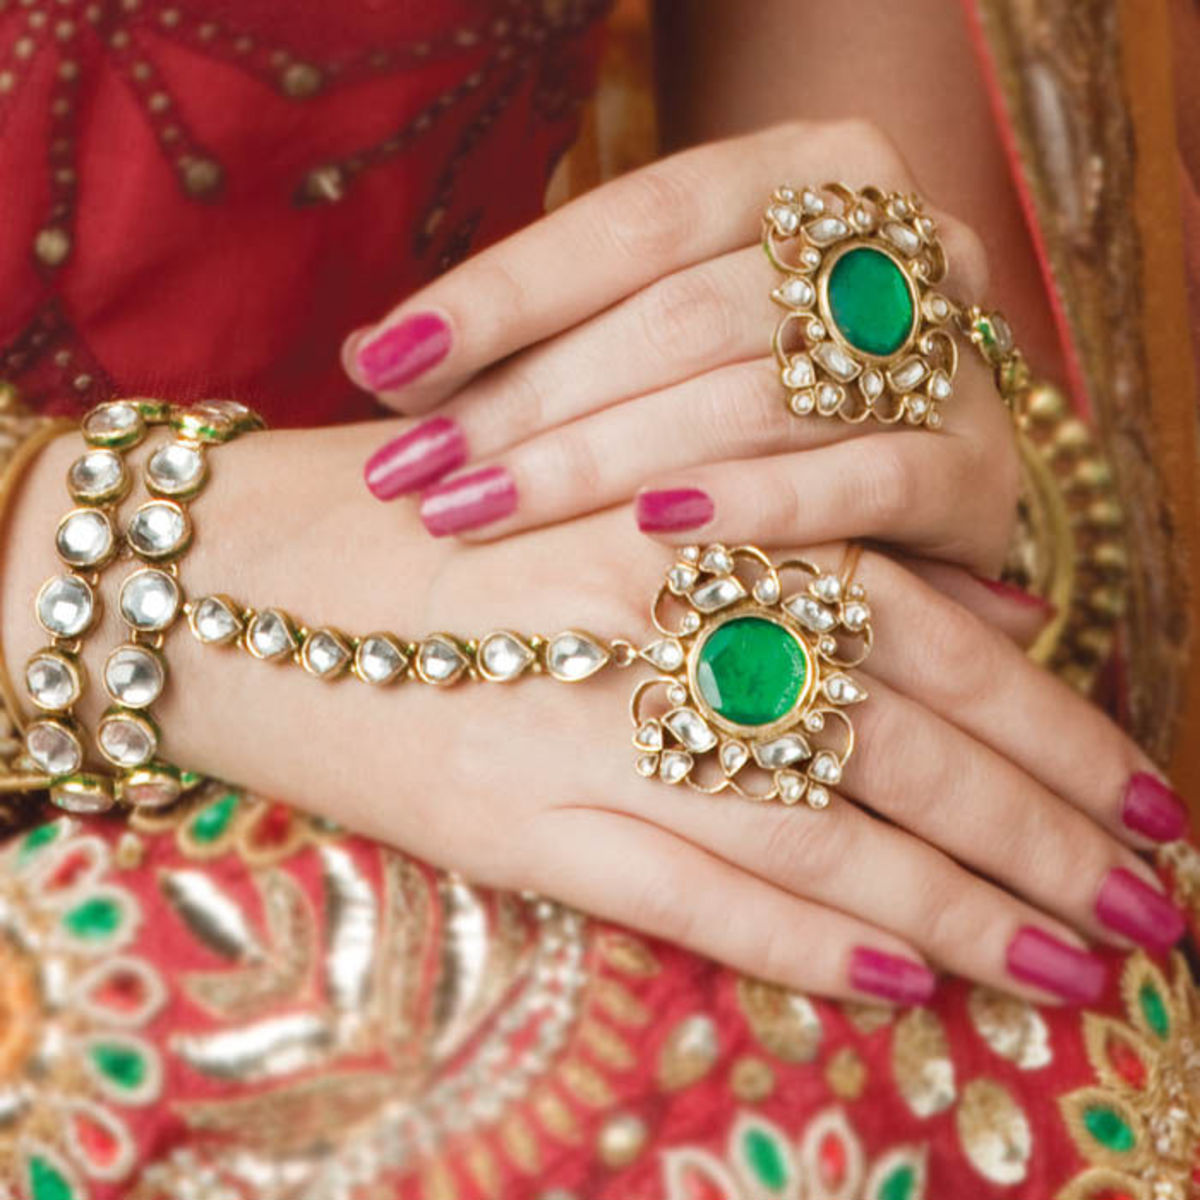 20 Photos Of Bridal Jewelry Designs Hubpages